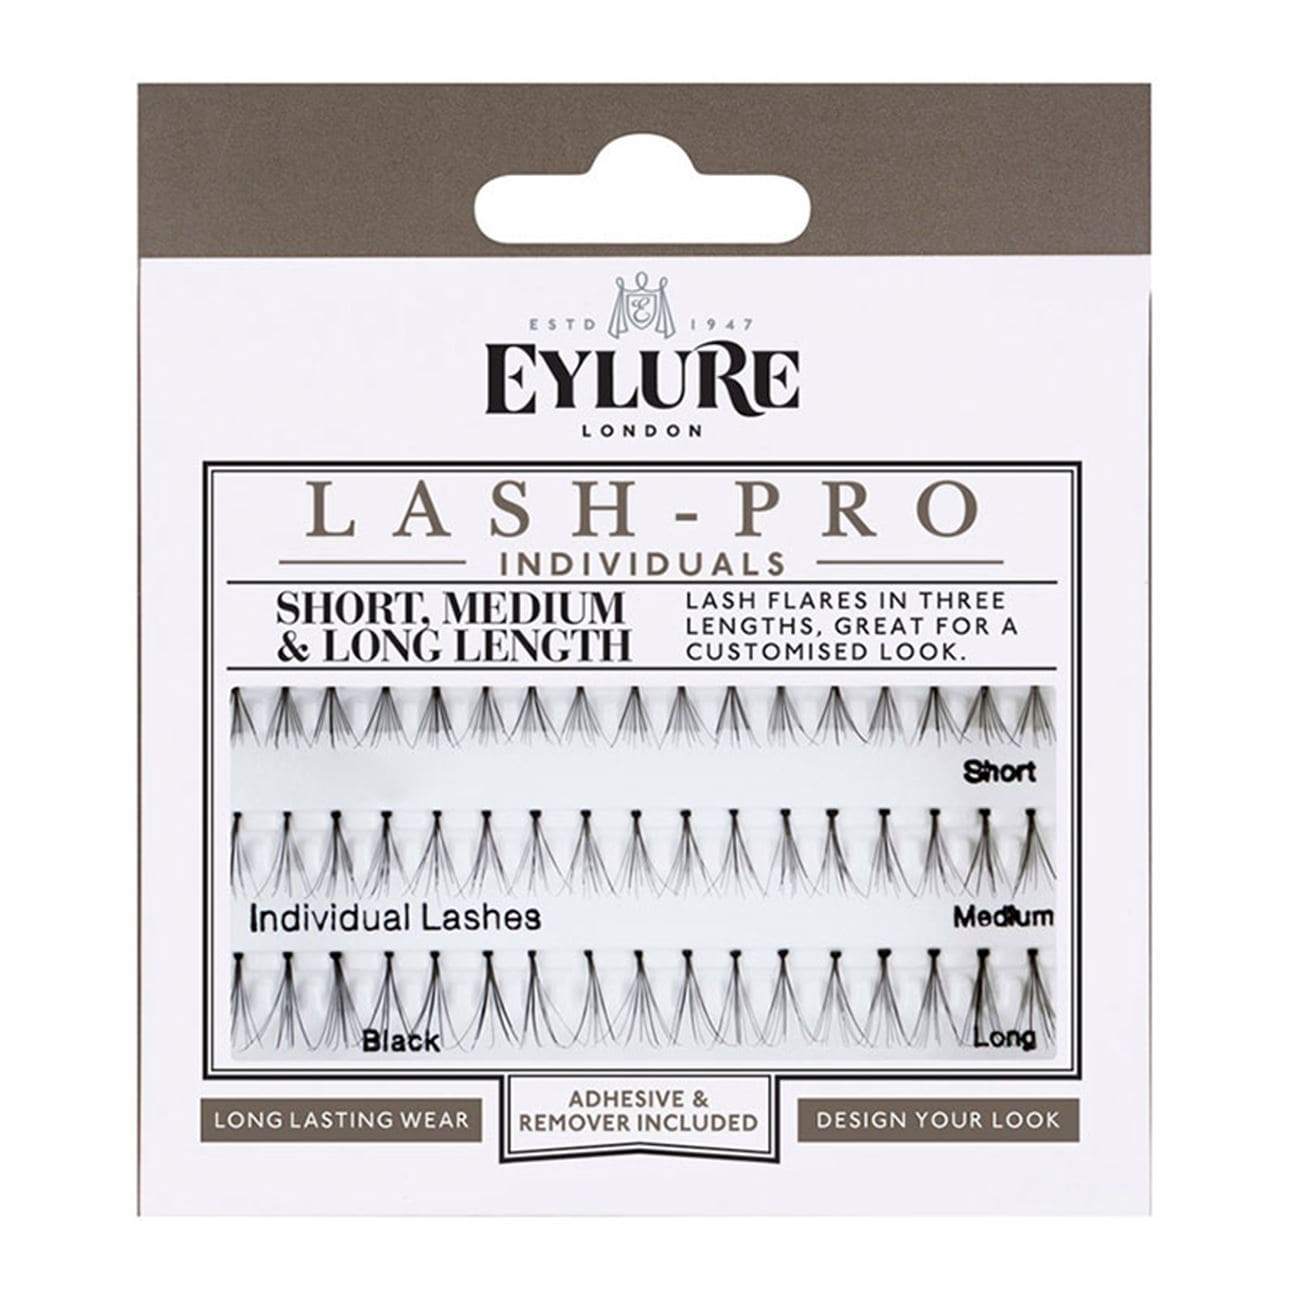 Lash-Pro Individuals - Short, Medium & Long Lashes